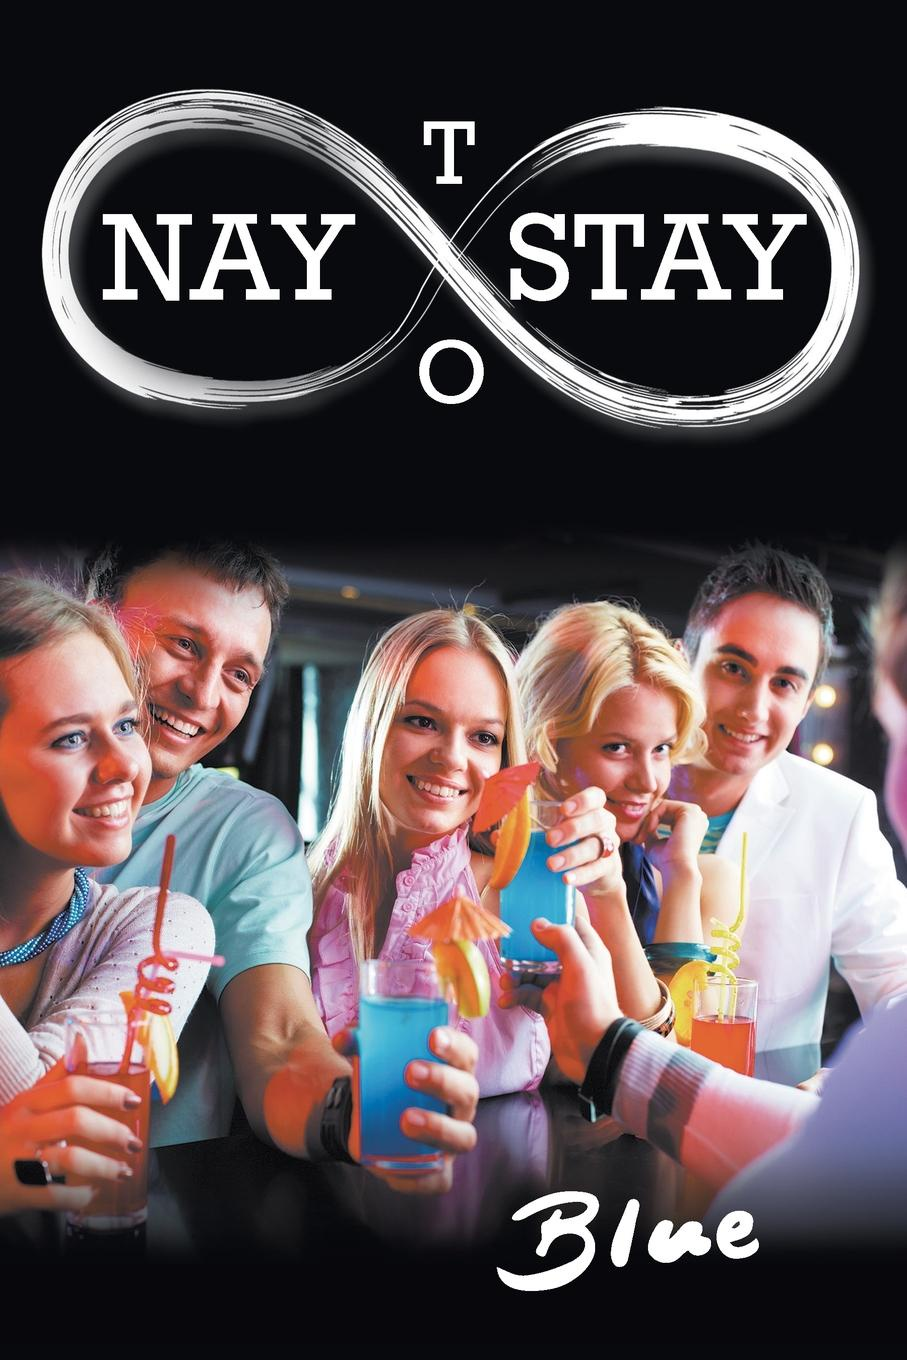 Blue Nay to Stay mark mardirossian i did it from iraq to freedom a true story